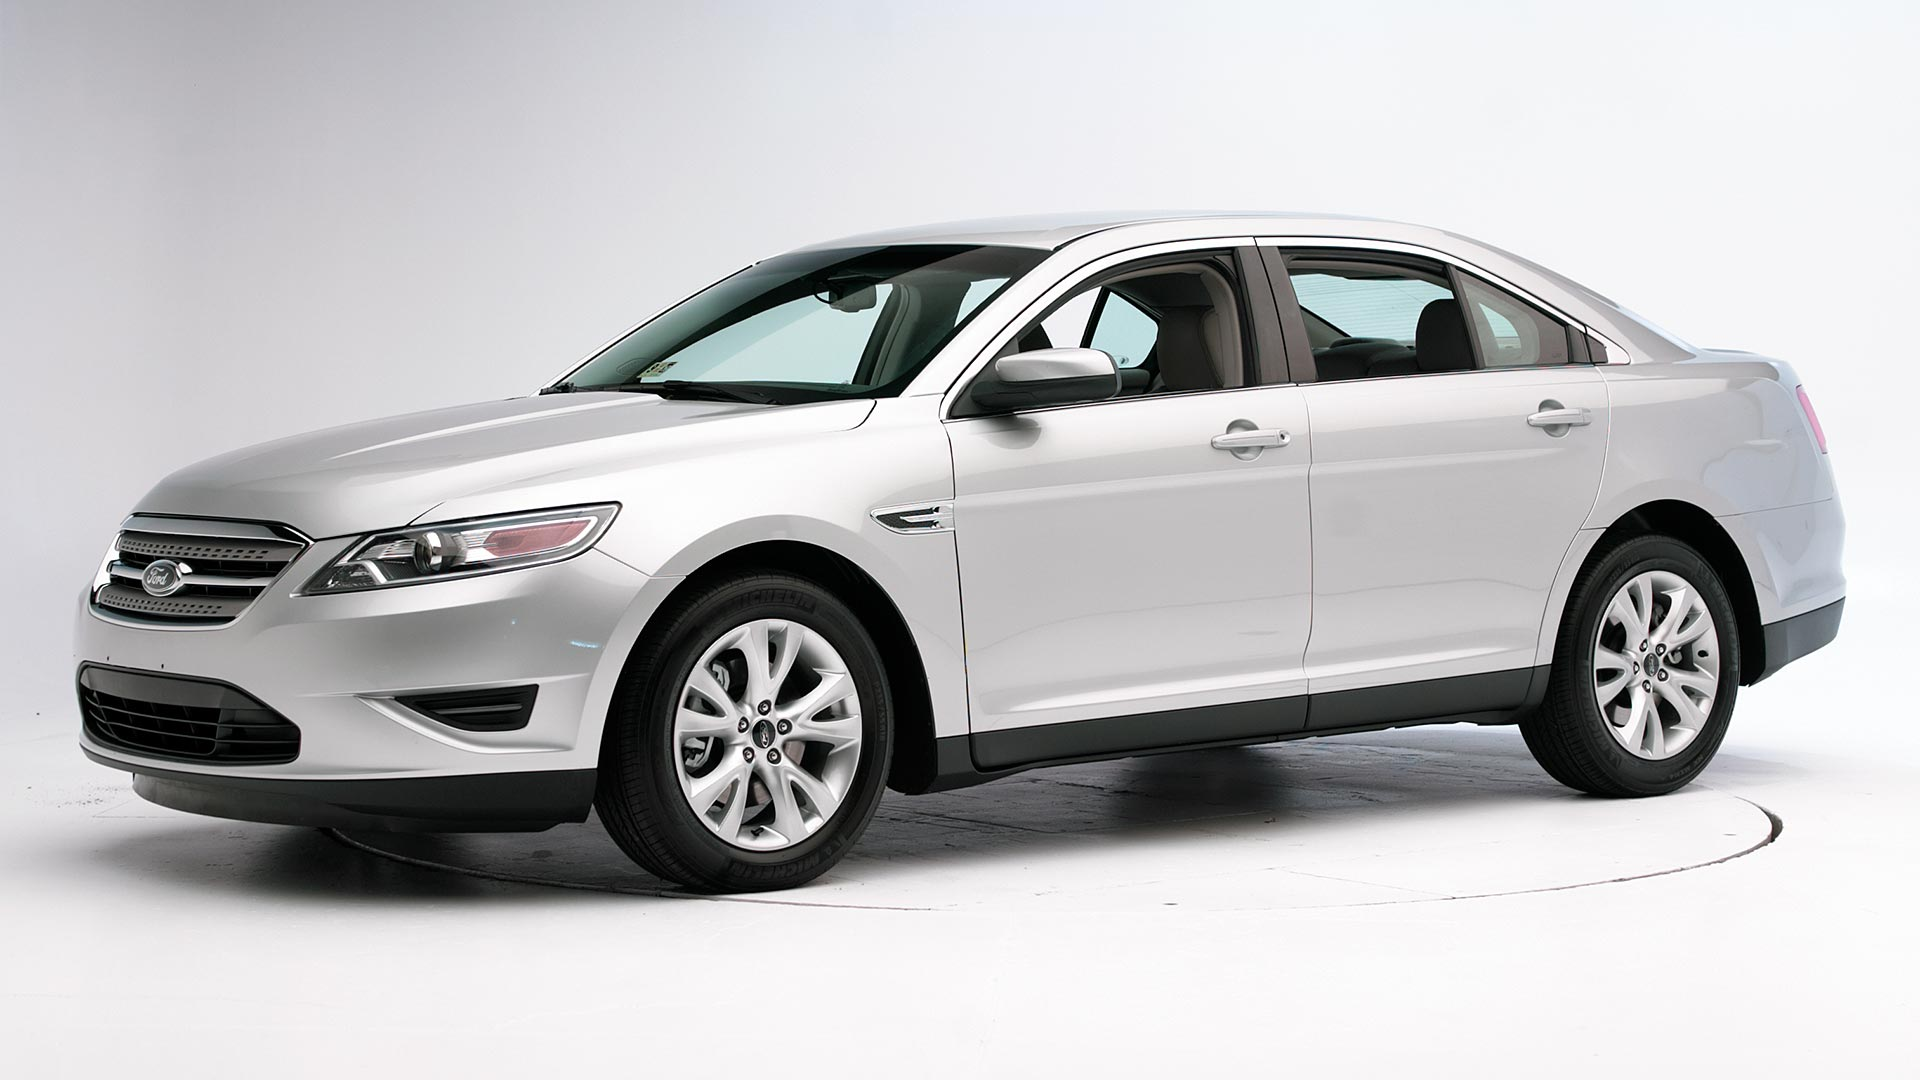 2010 Ford Taurus 4-door sedan